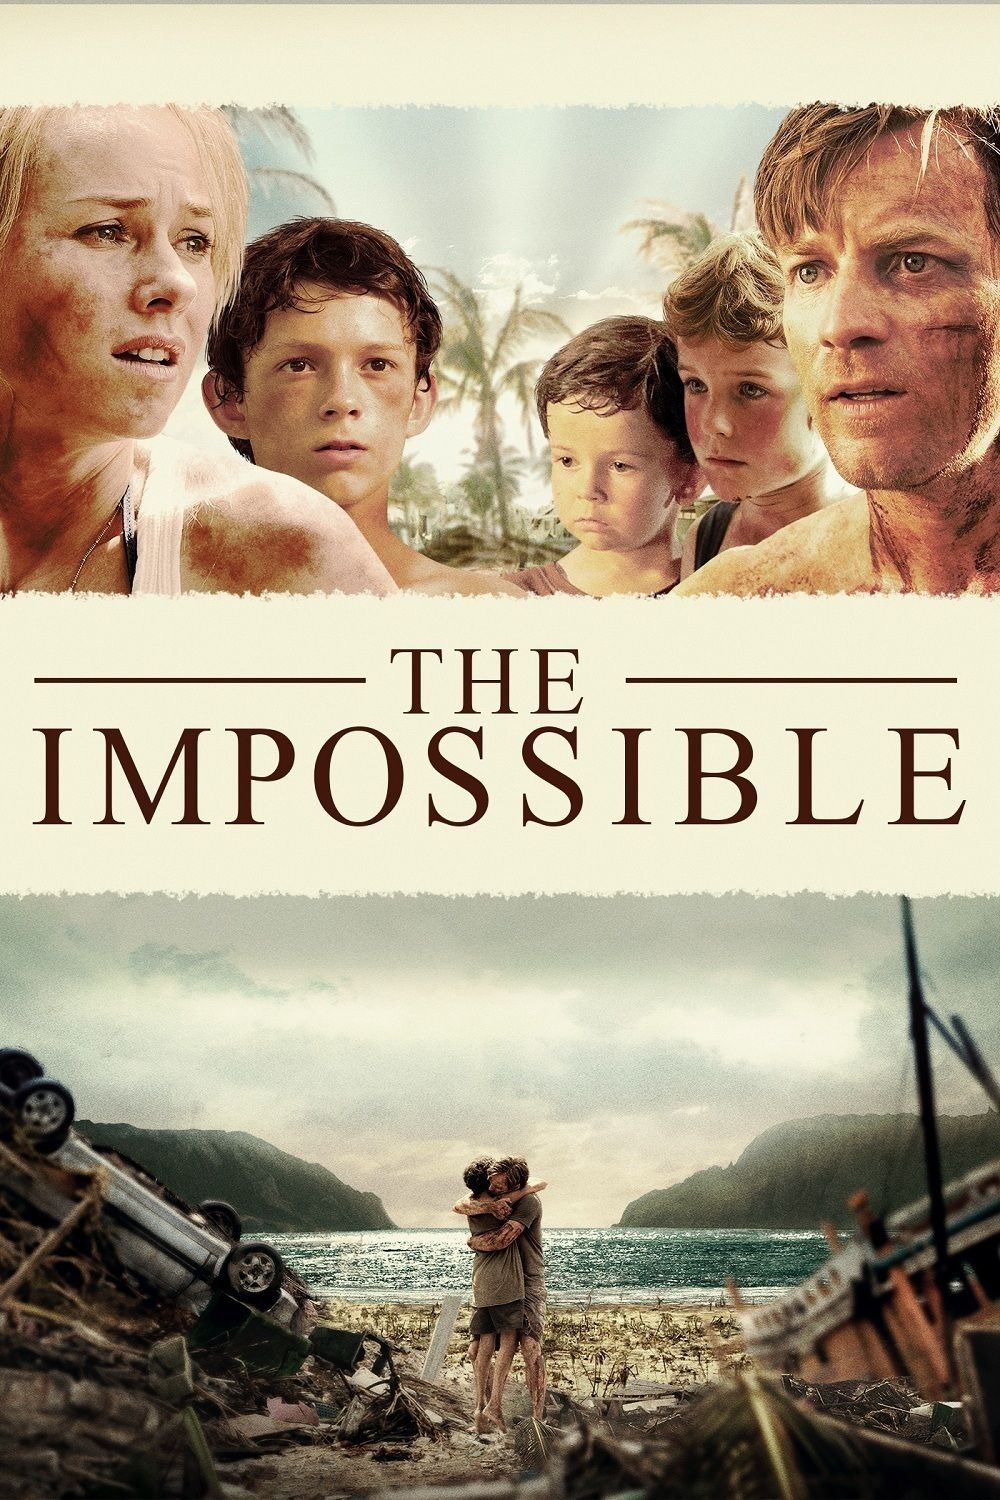 The Impossible 2012 Movie The Impossible Full Movies Online Free Tom Holland